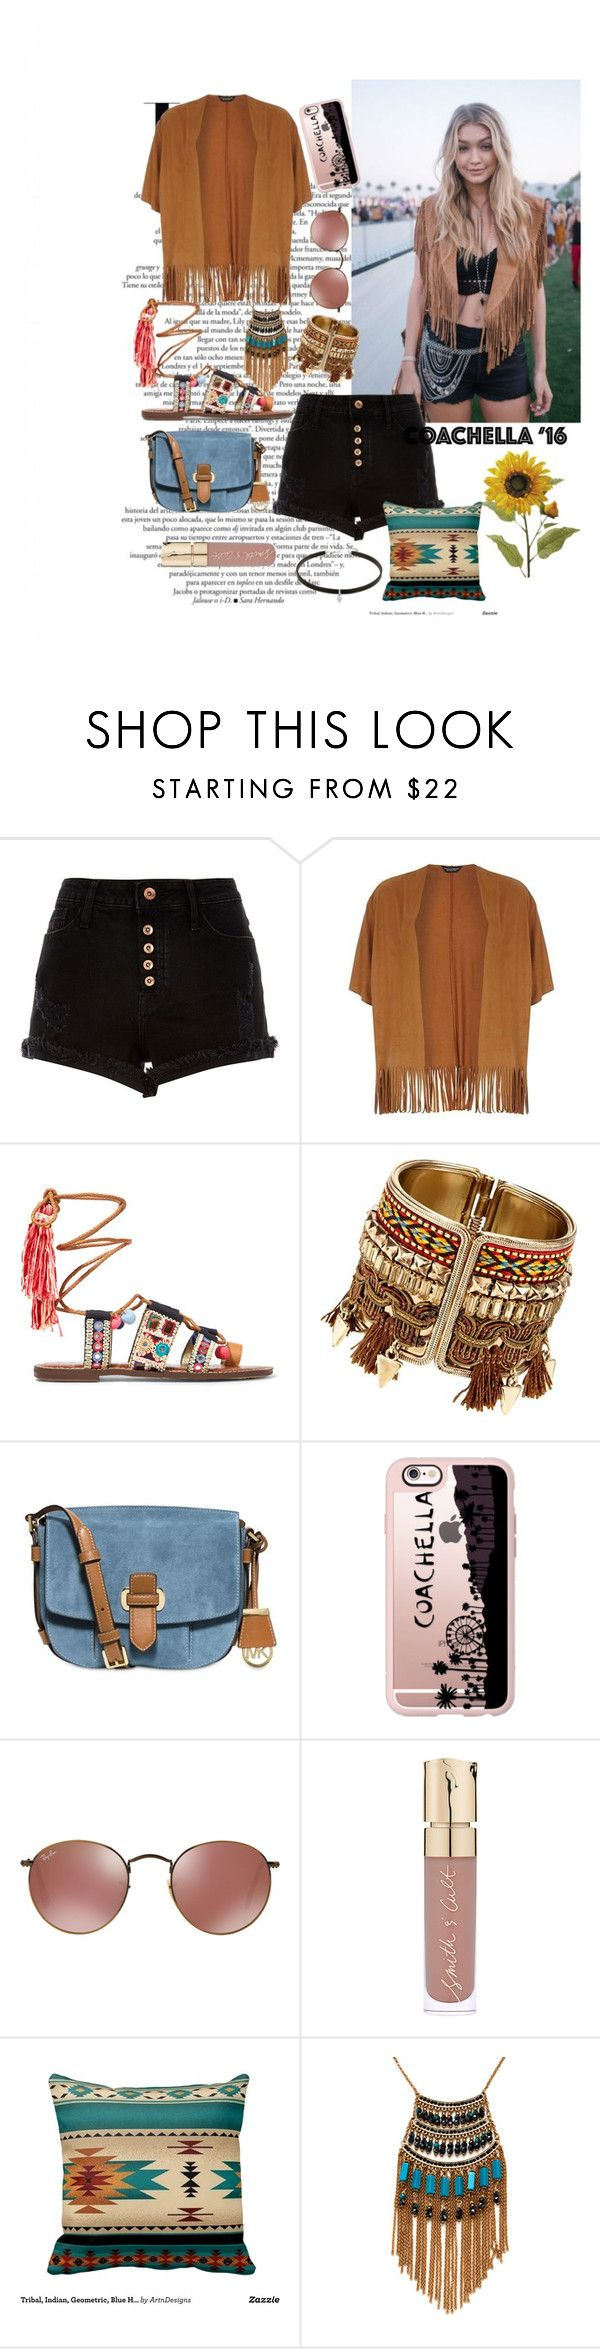 """""""Coachella '16 Gigi hadid get the look"""" by doniaabu ❤ liked on Polyvore featuring River Island, Dorothy Perkins, Sam Edelman, MICHAEL Michael Kors, Casetify, Smith & Cult and Leslie Danzis"""